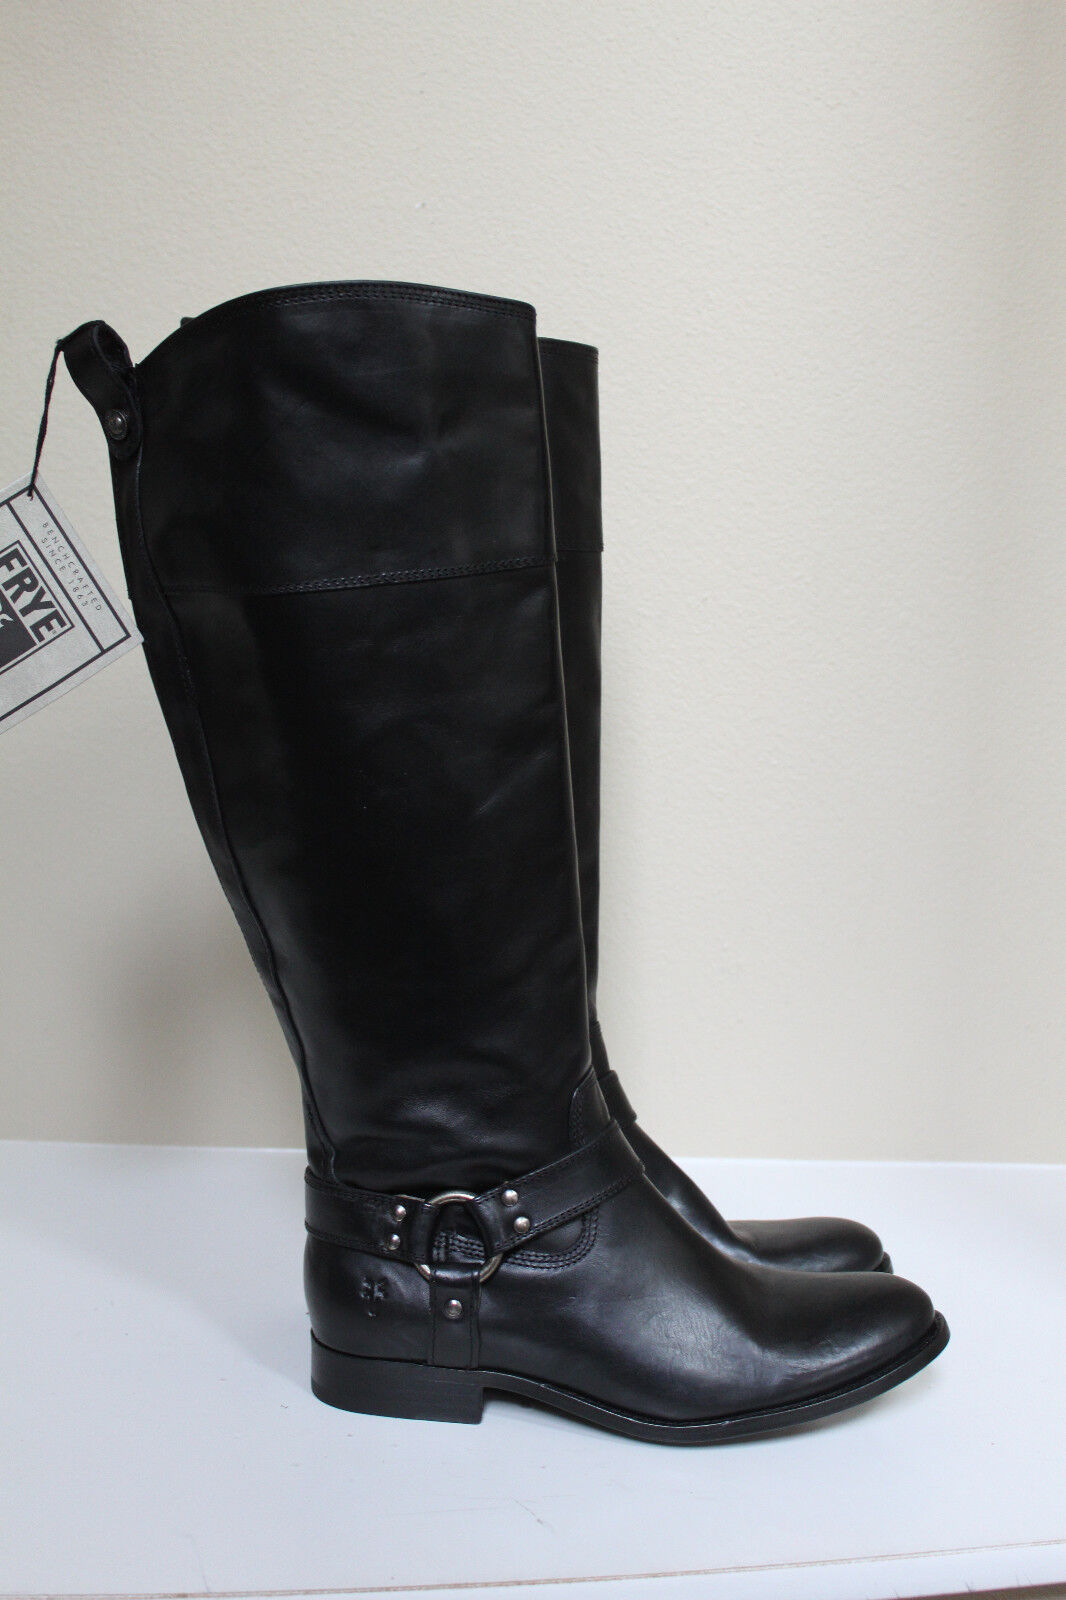 New sz 6 Frye Melissa Harness Black Leather Tall Riding Low Heel Boots Shoes